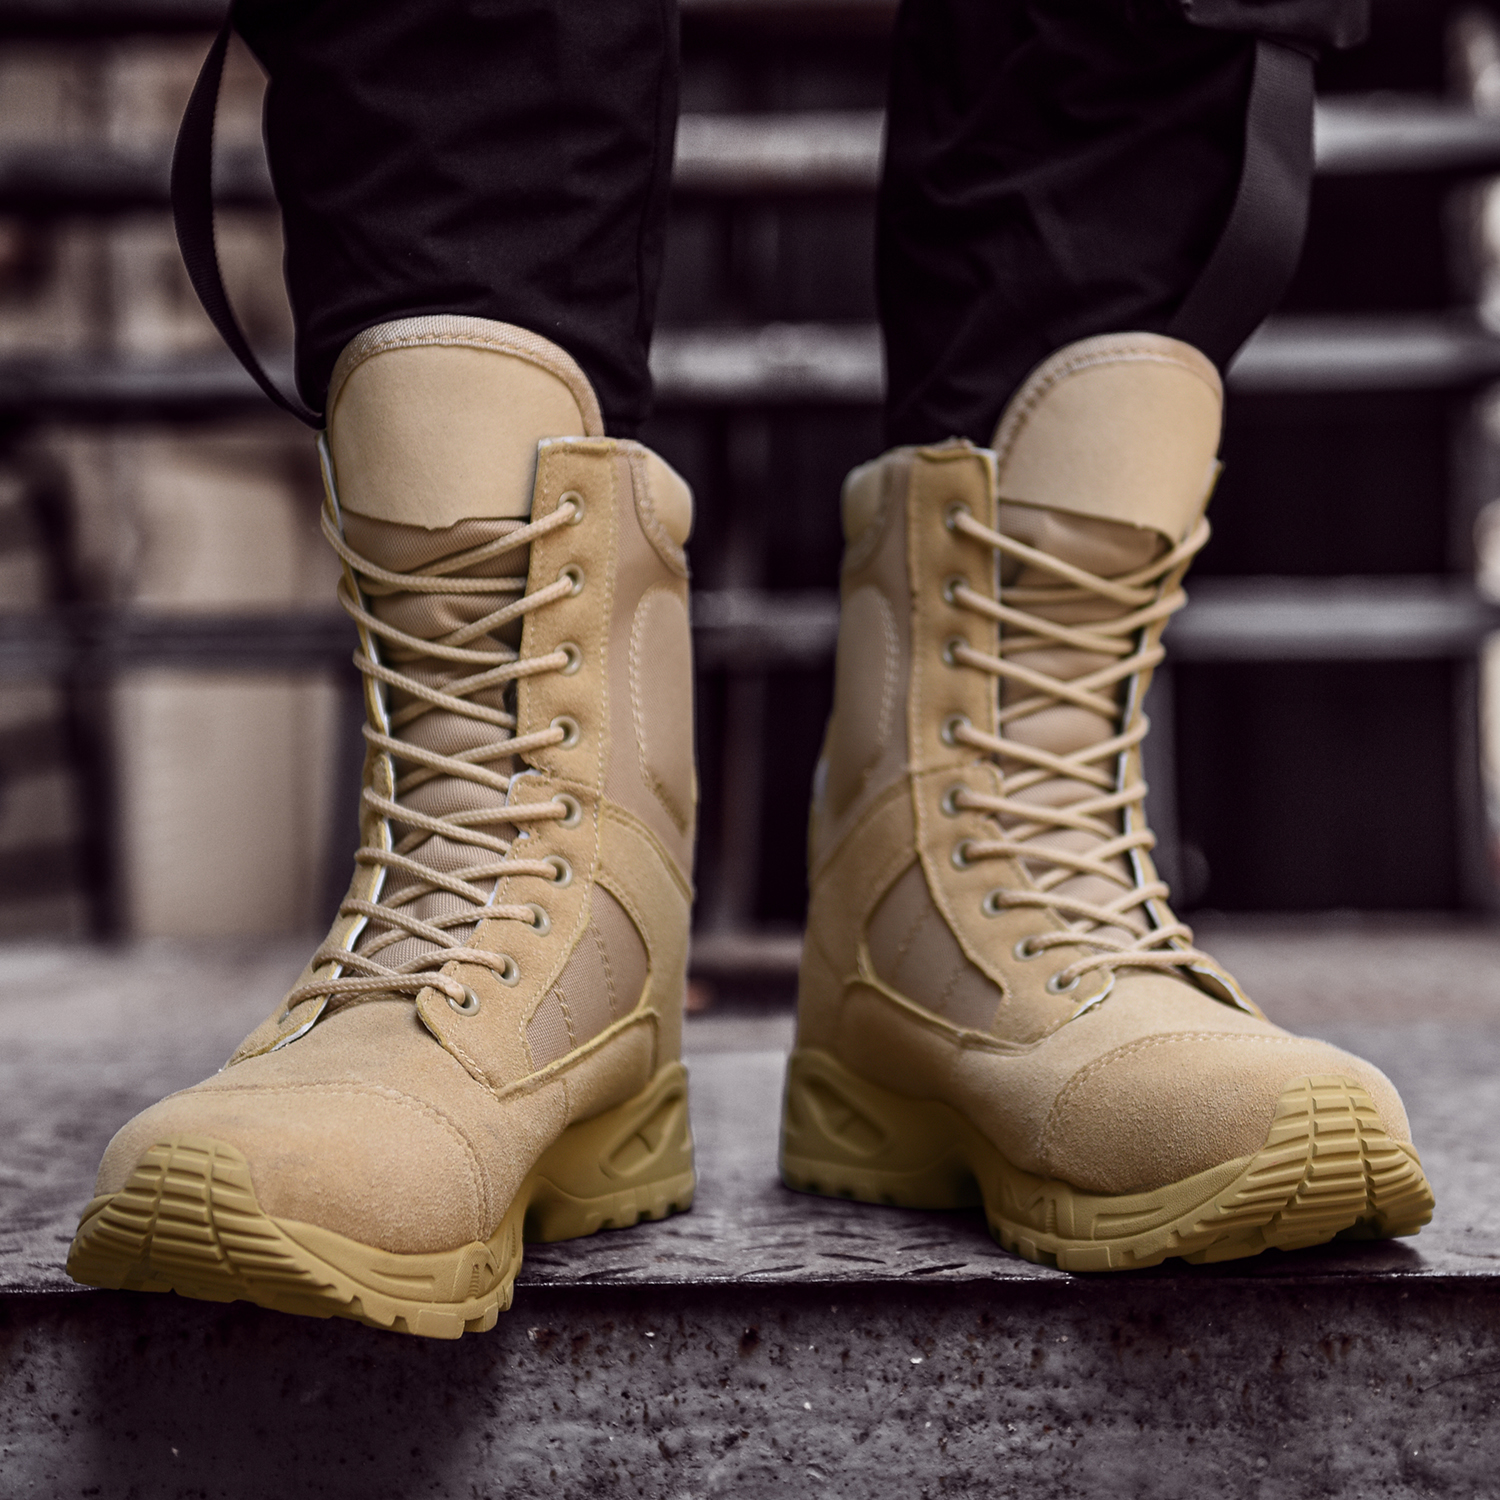 Mens Tactical Army Boots Men Special Forces Ankle Combat Boots Plus Size 37-46 Work Shoes Military Boot Sneakers Man